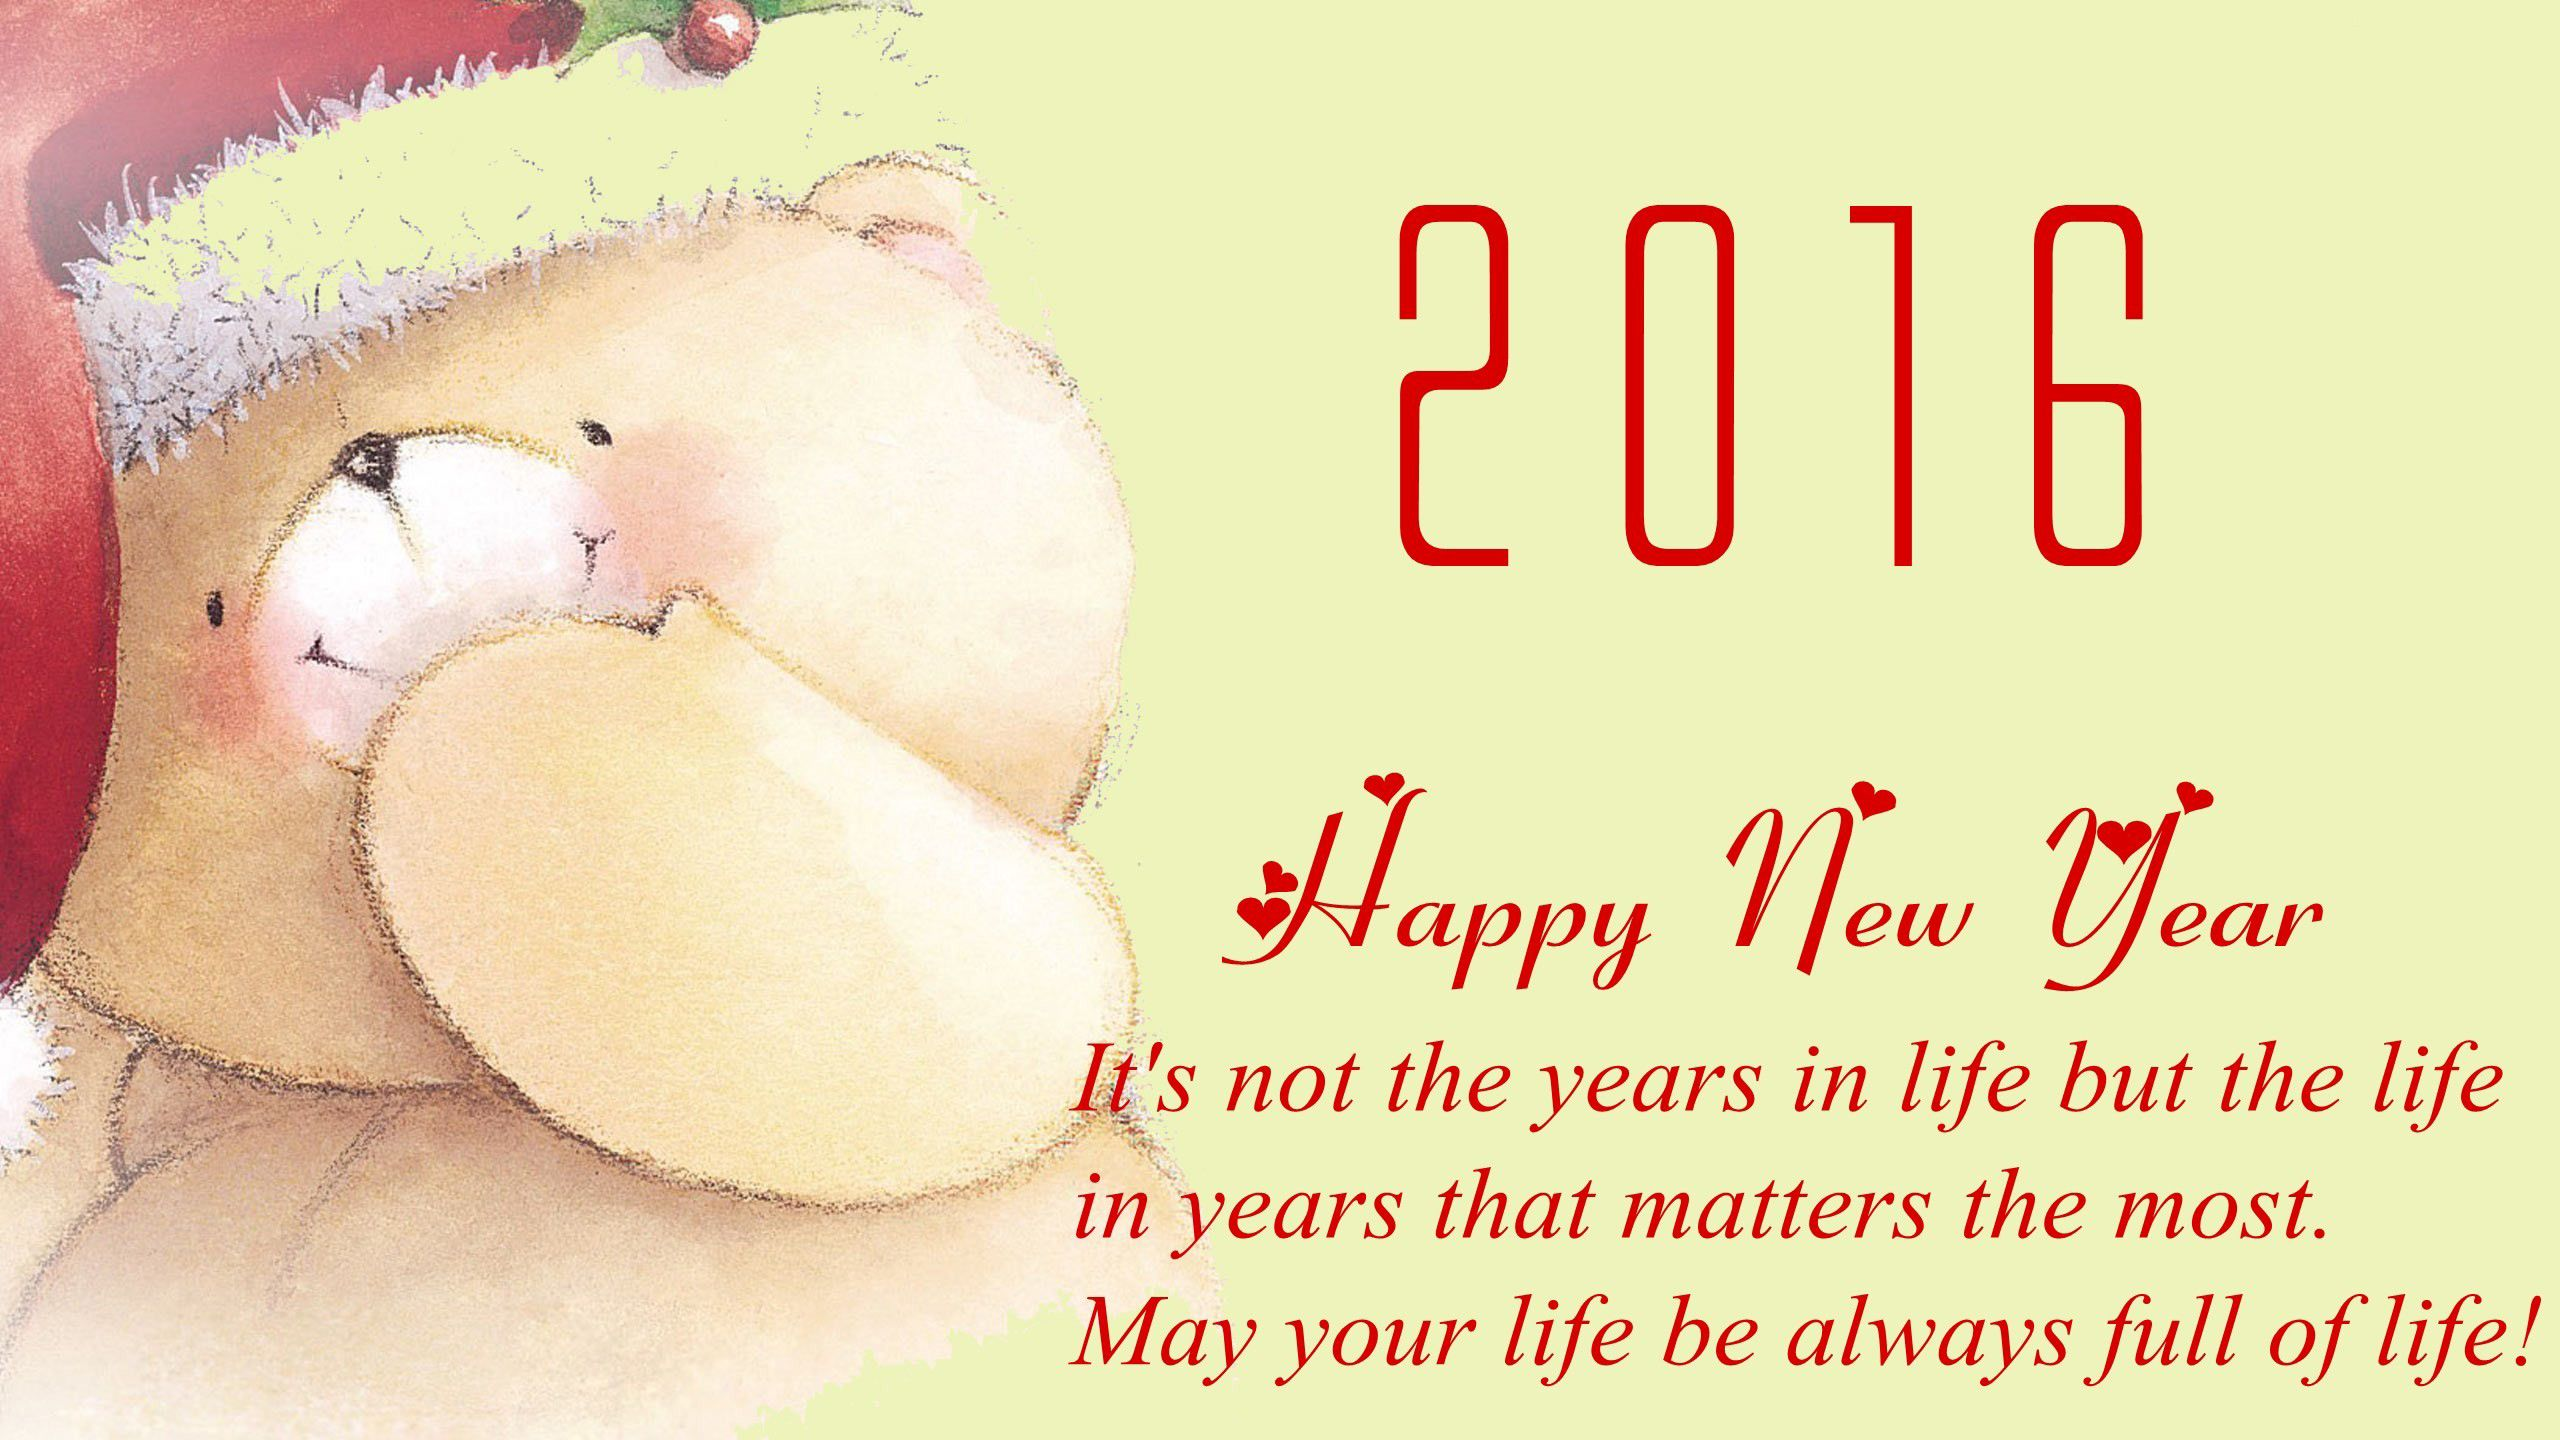 happy new year 2016 free download 20 desktop wallpapers httpwww